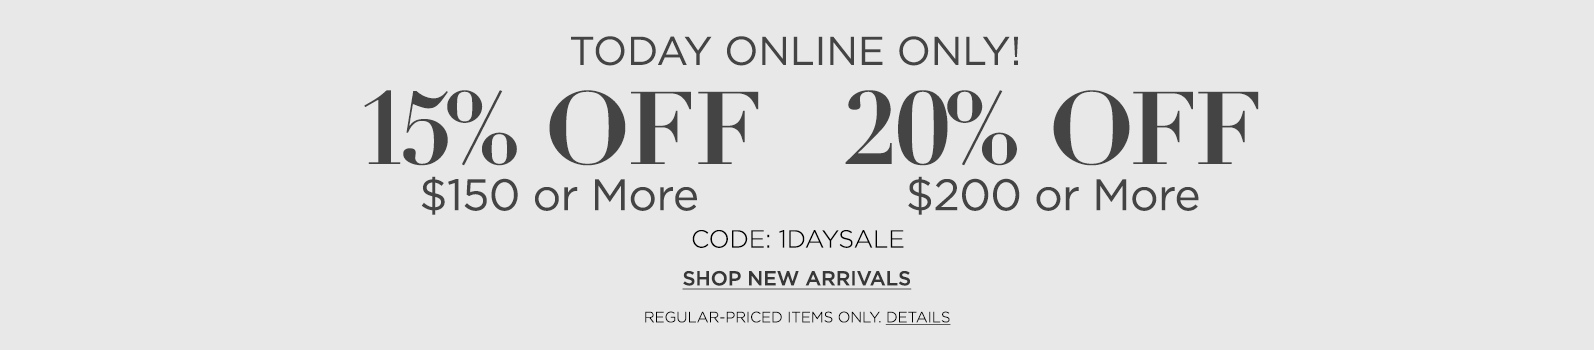 TODAY ONLINE ONLY!